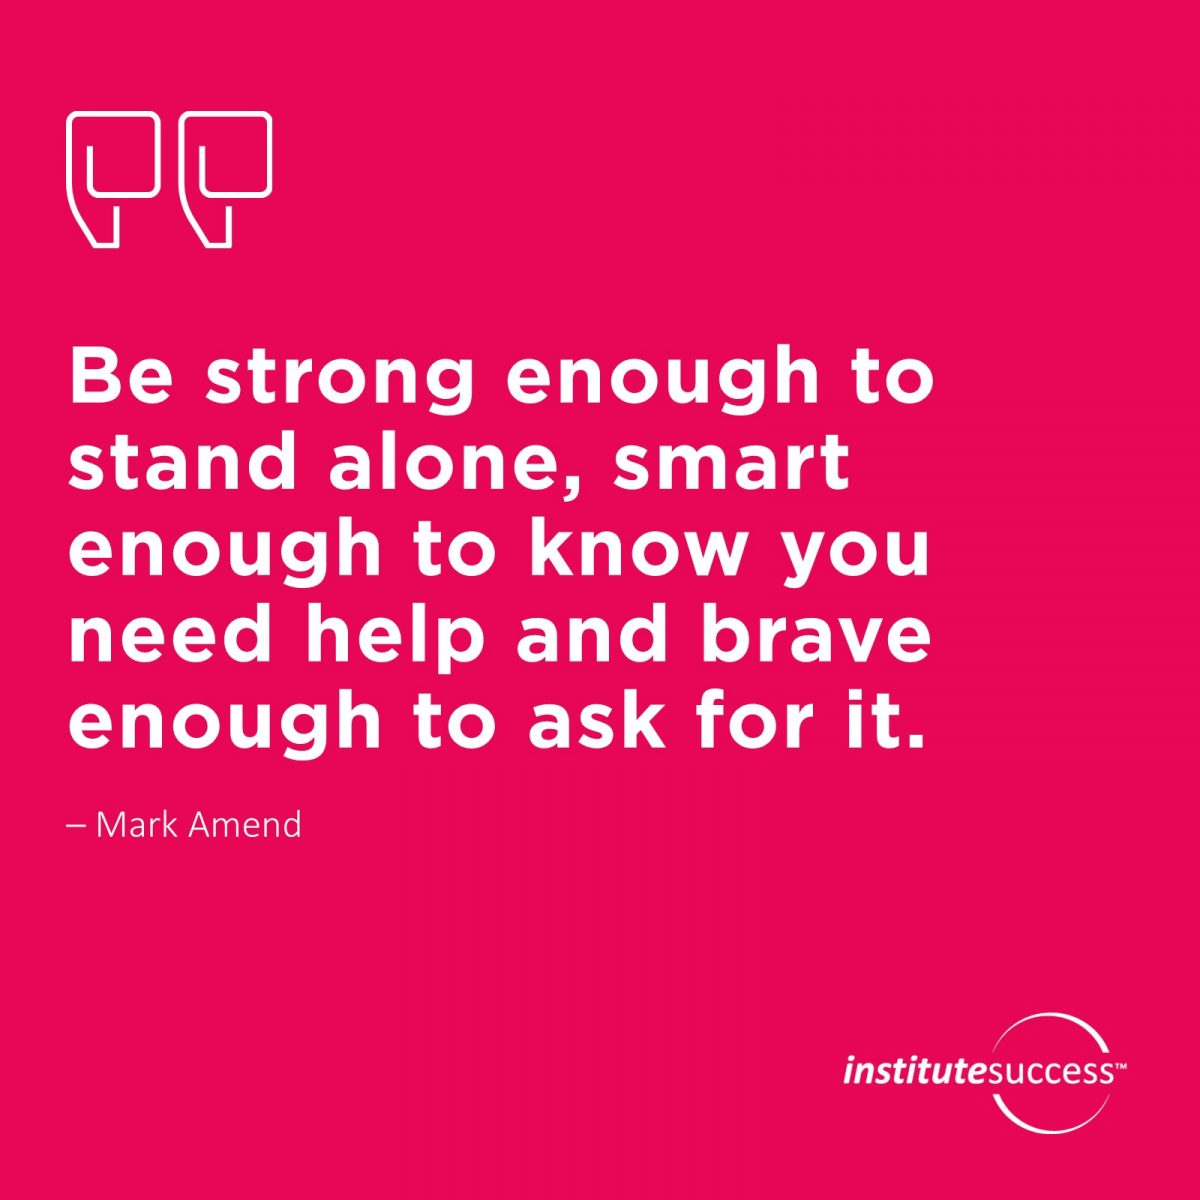 Be strong enough to stand alone, smart enough to know you need help and brave enough to ask for it. Mark Amend